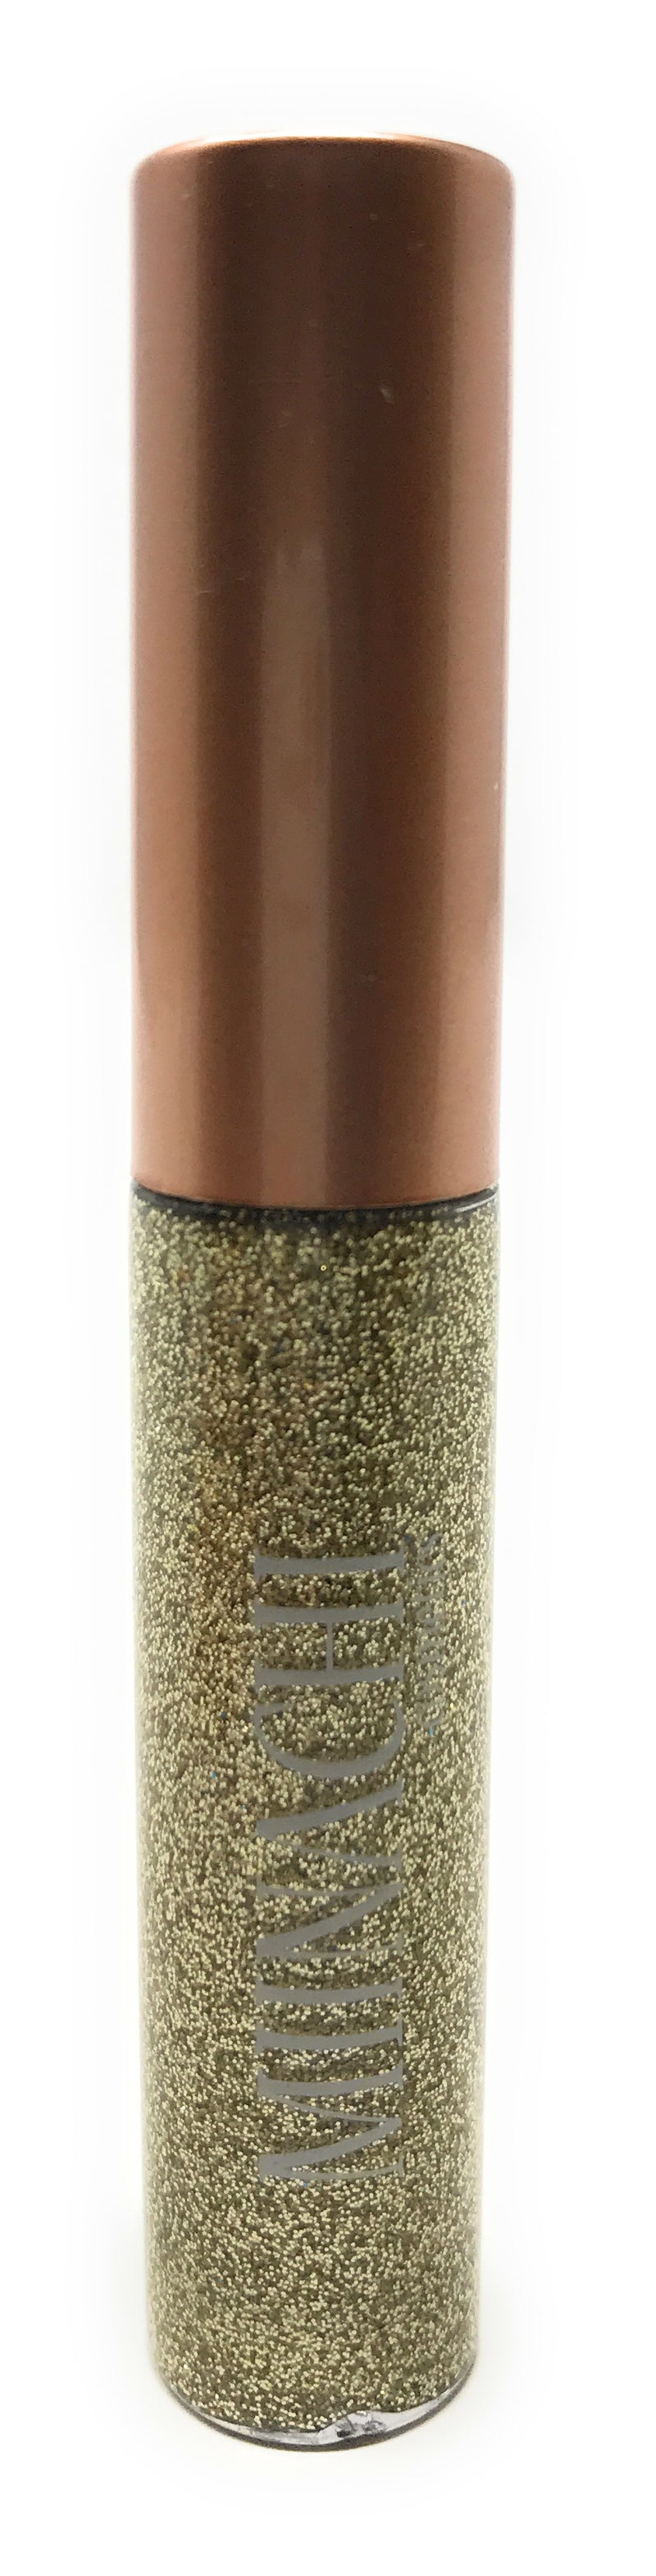 Light Gold Liquid Eye Liner in the Shade Champagne Cosmetic Grade Glitter Smudge Proof Water Proof No Glue Needed